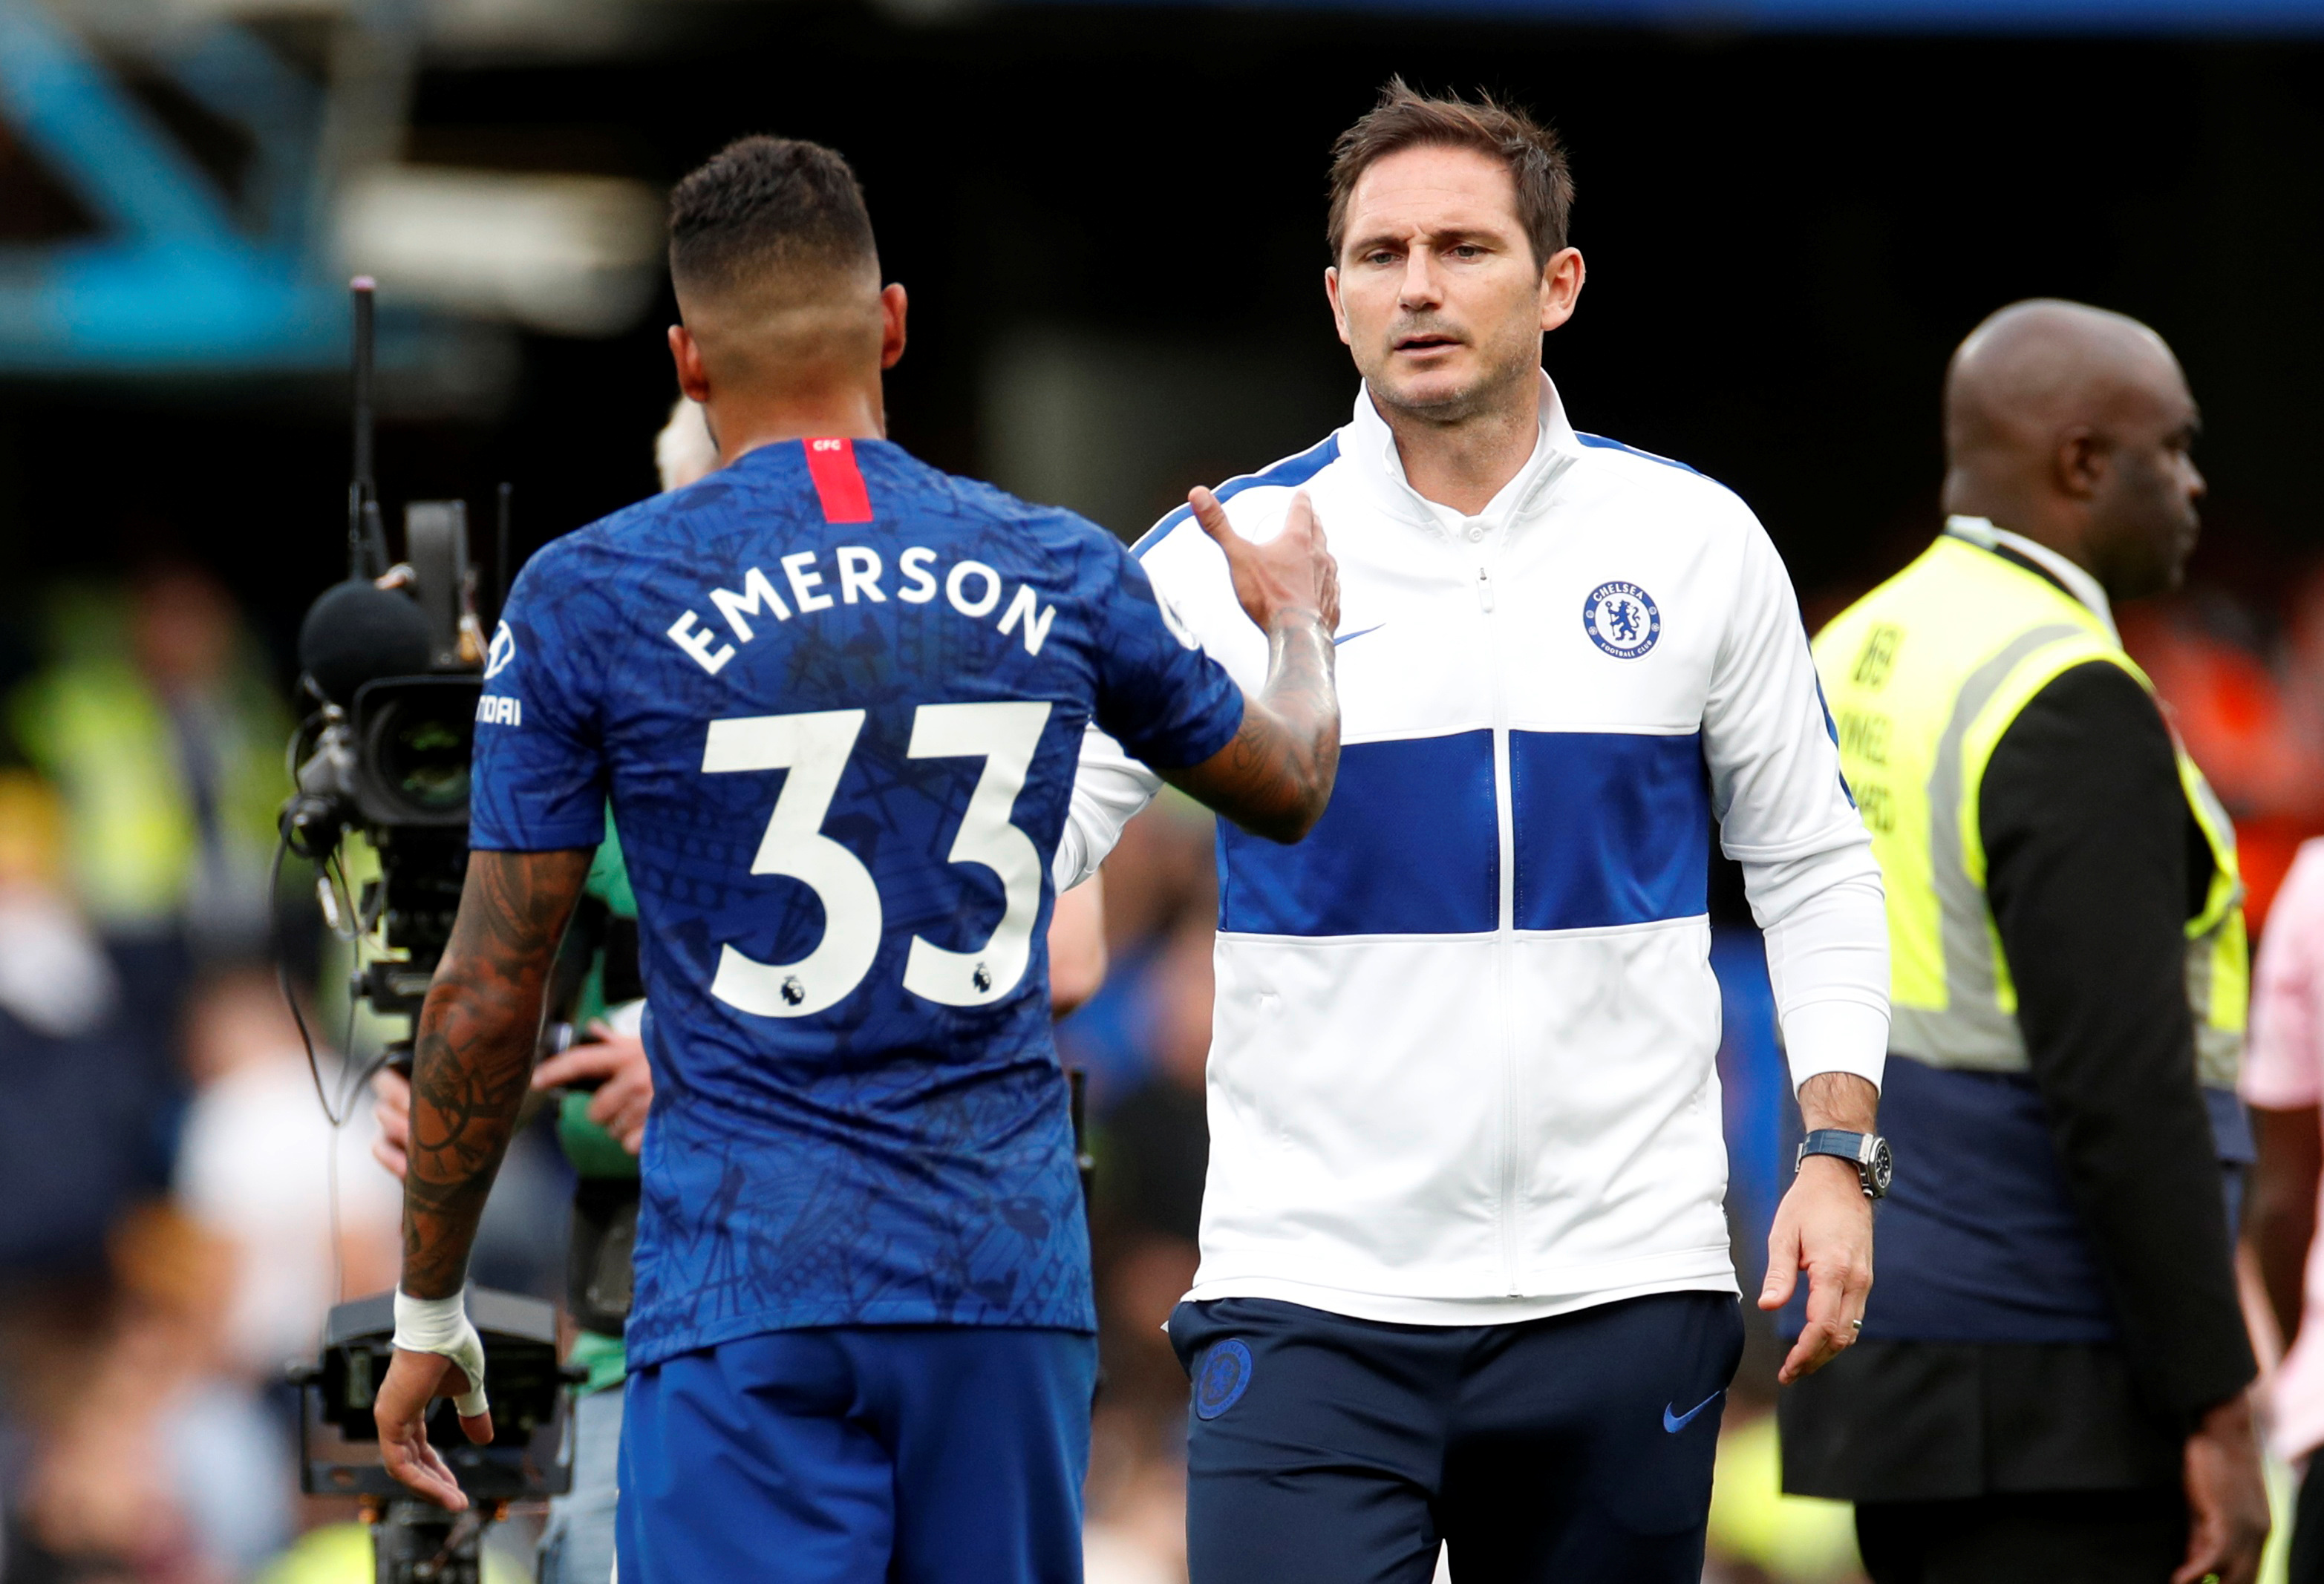 Chelsea face Emerson injury concerns ahead of Wolves clash